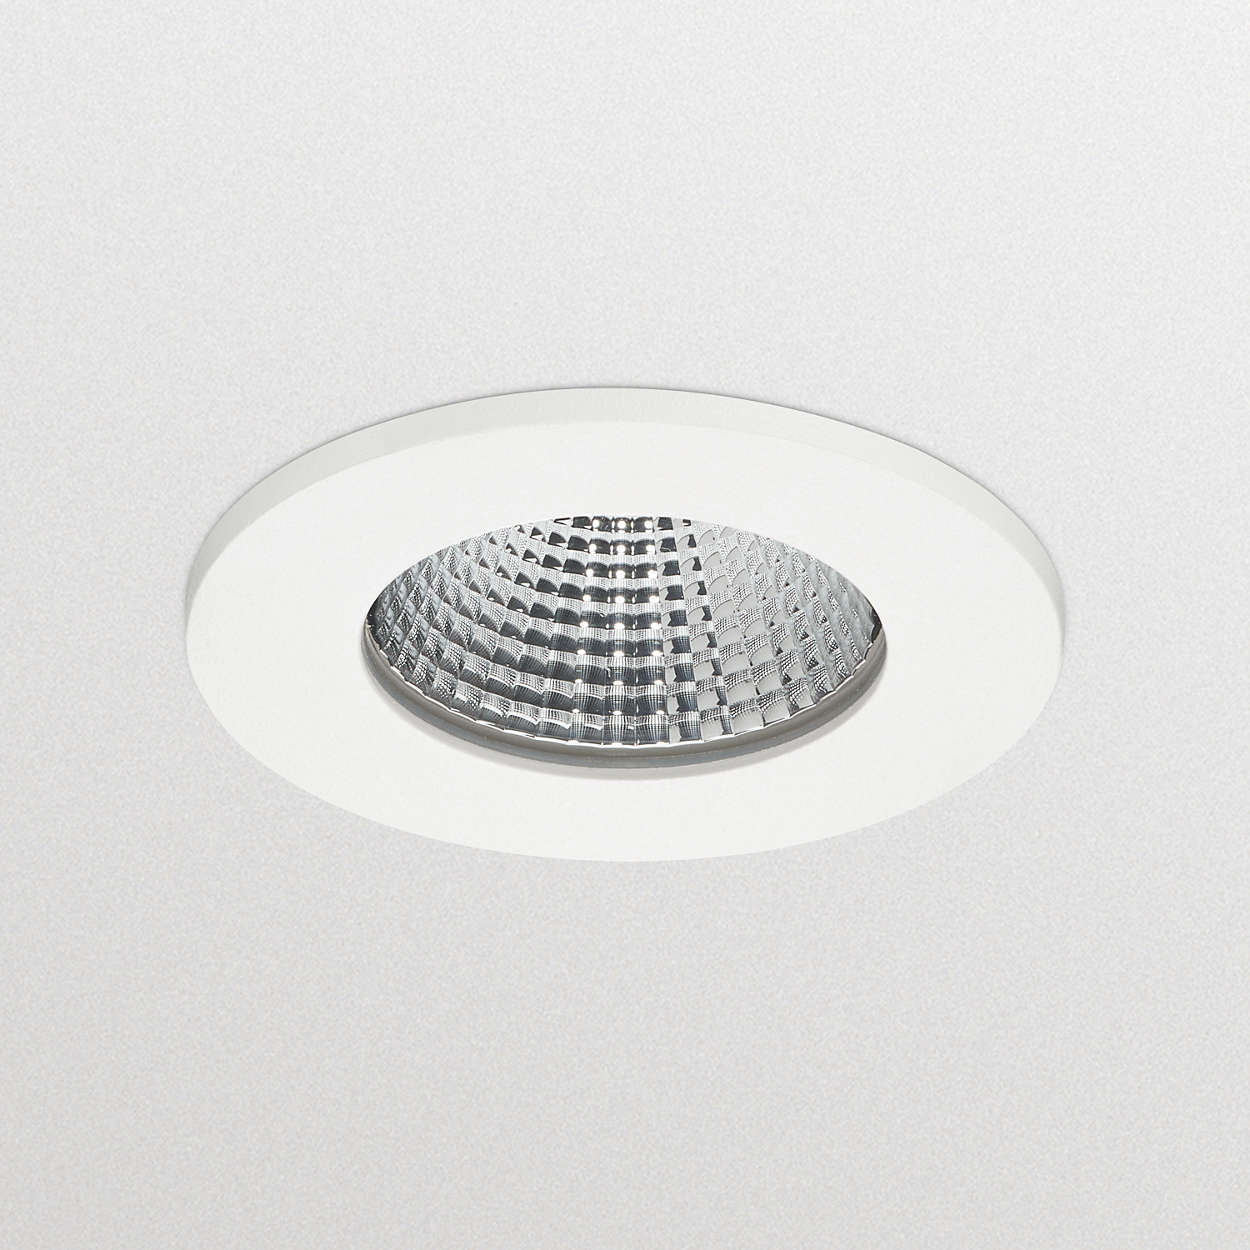 ClearAccent: foco LED empotrable y asequible